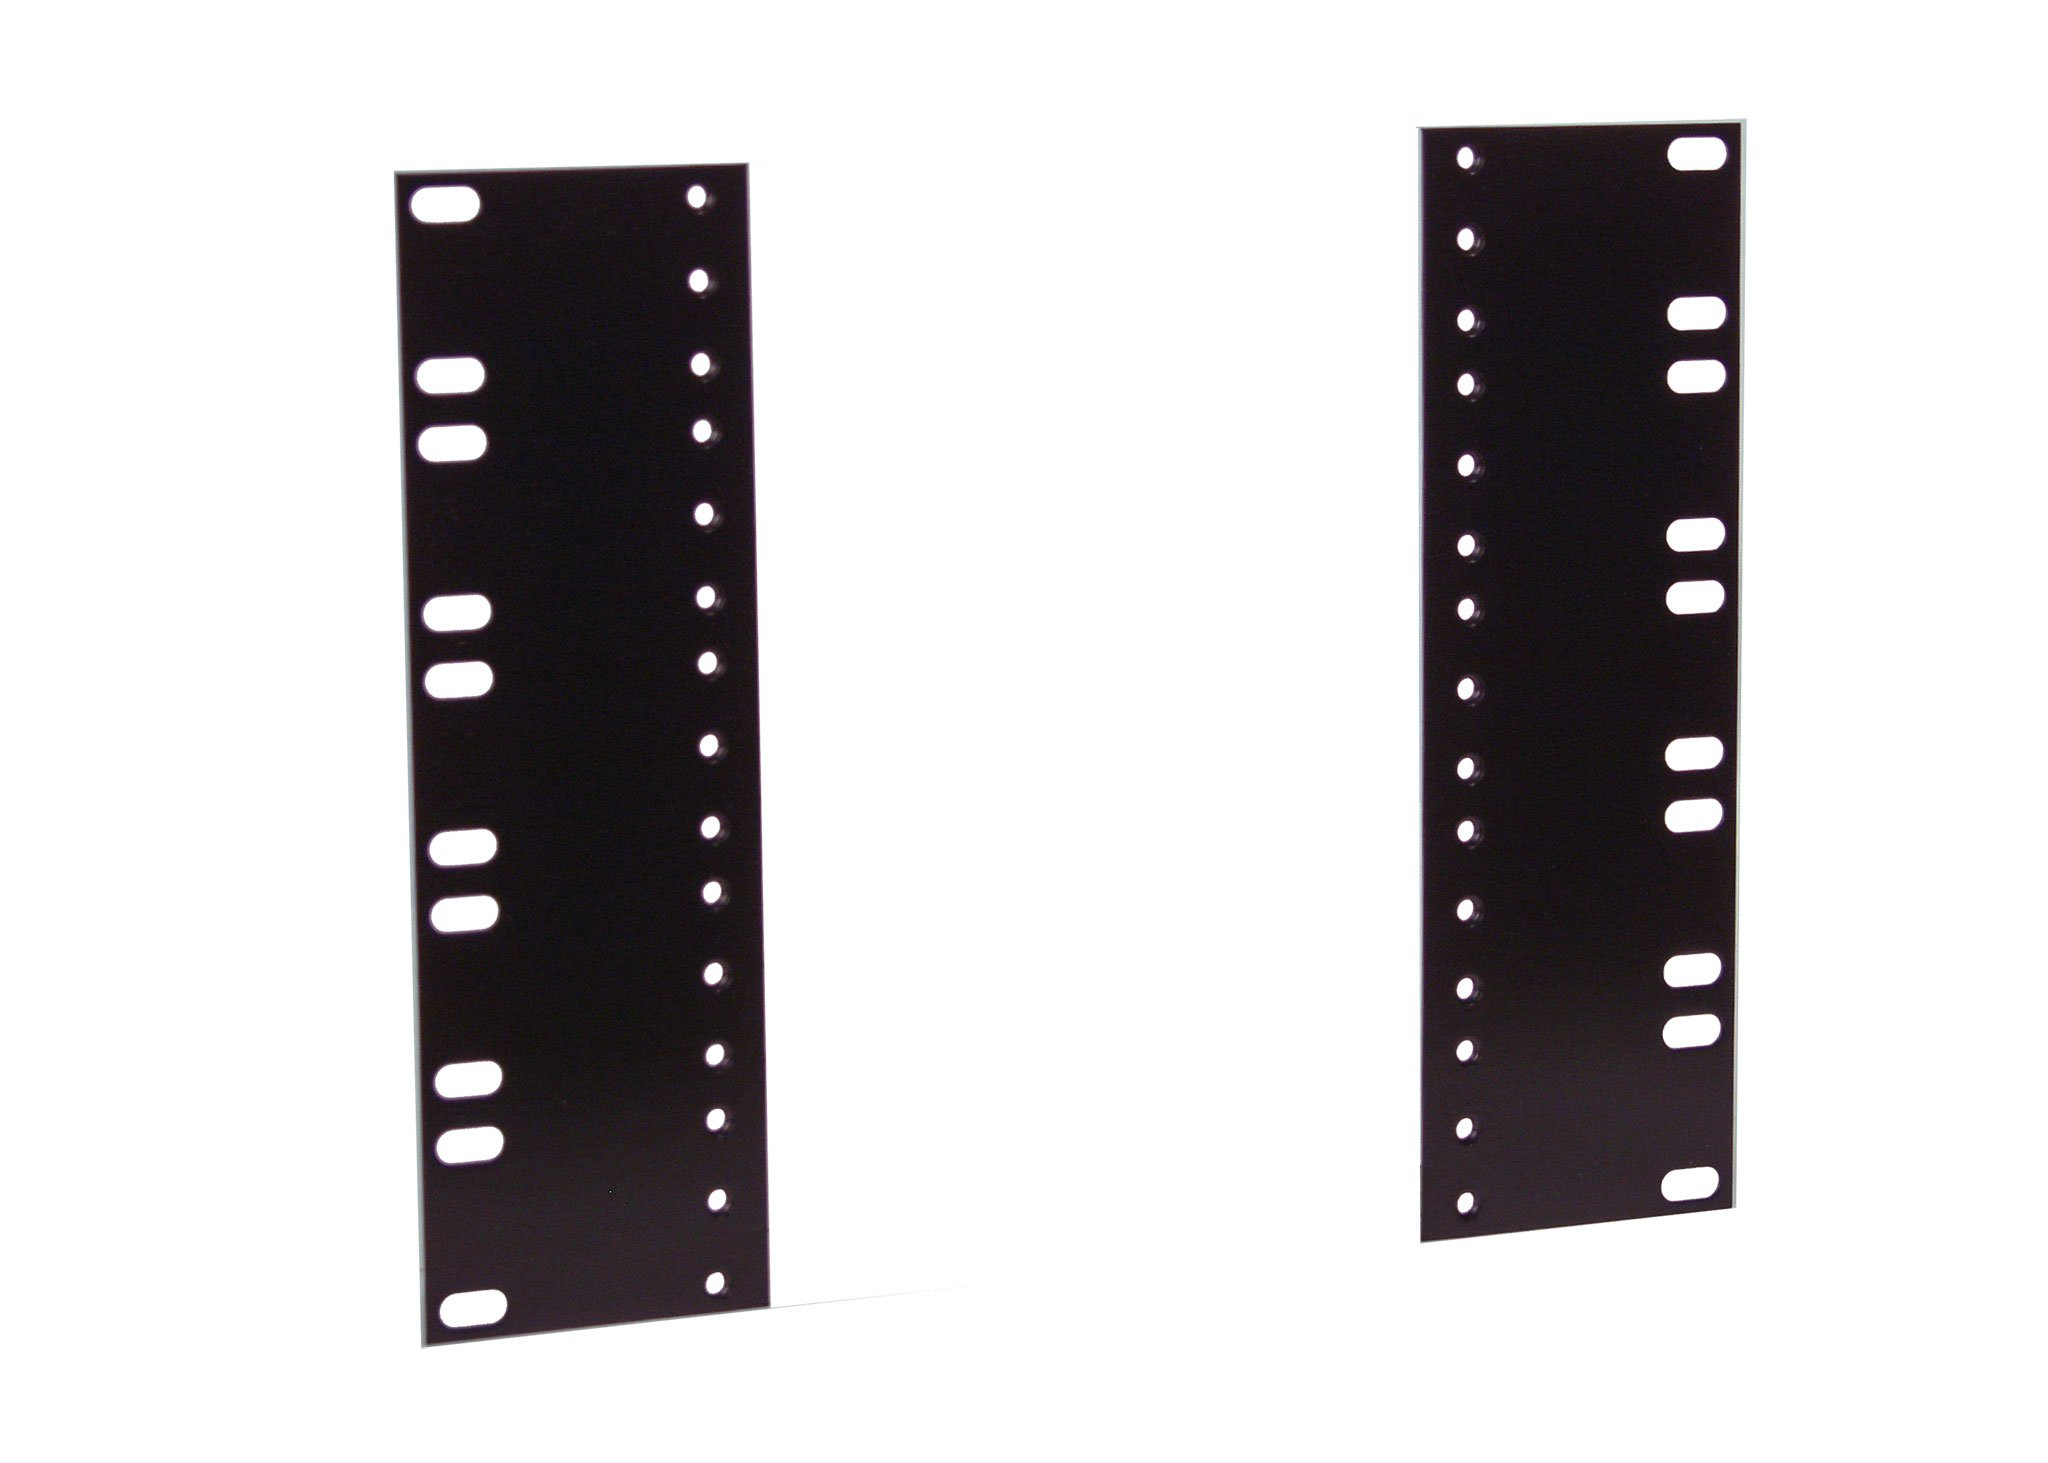 RCB1060-5U Rackmount 5U 23'' to 19'' Rack Reducer Adapter Bracket for 2 Post or 4 Post Cabinet (1 pair) by IAENCLOSURES